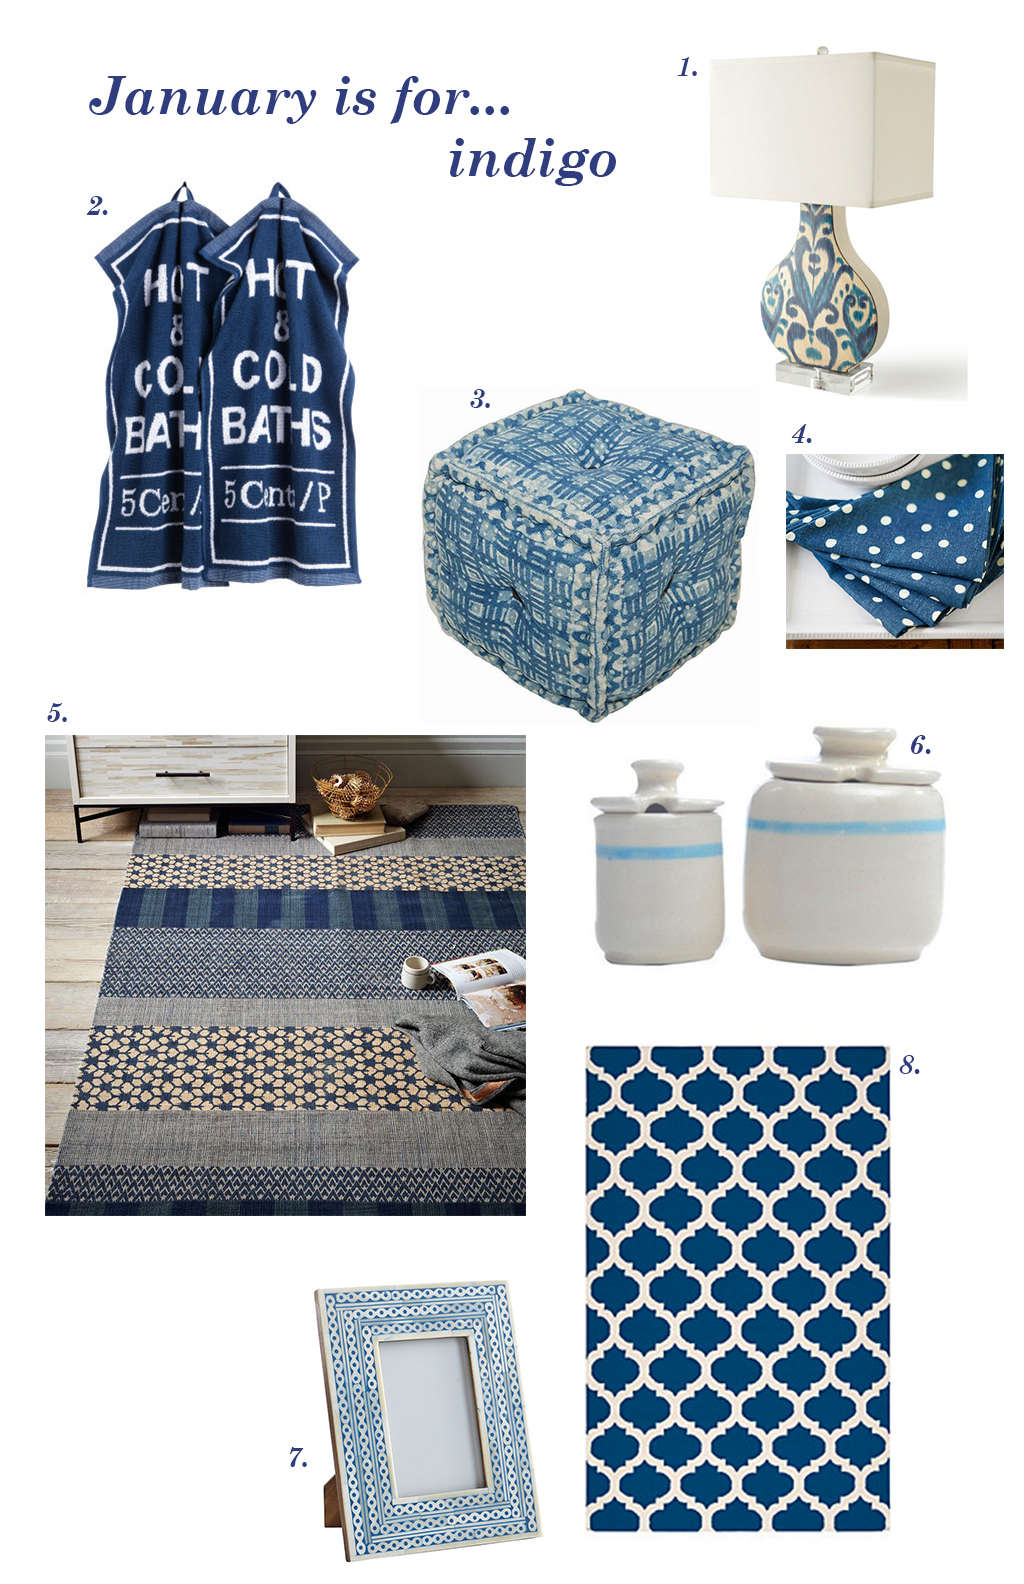 Decorating with Indigo